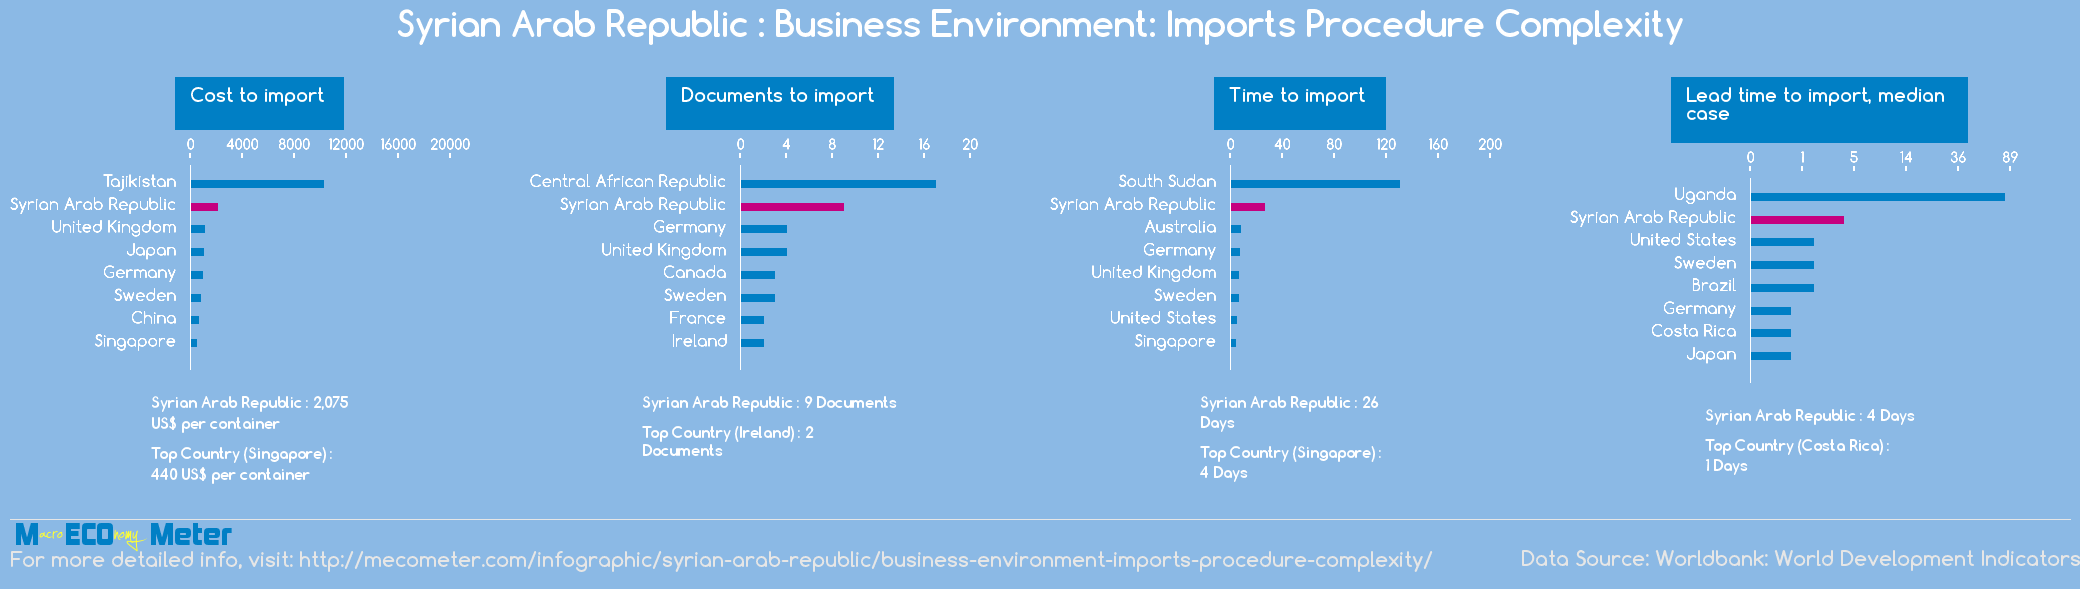 Syrian Arab Republic : Business Environment: Imports Procedure Complexity